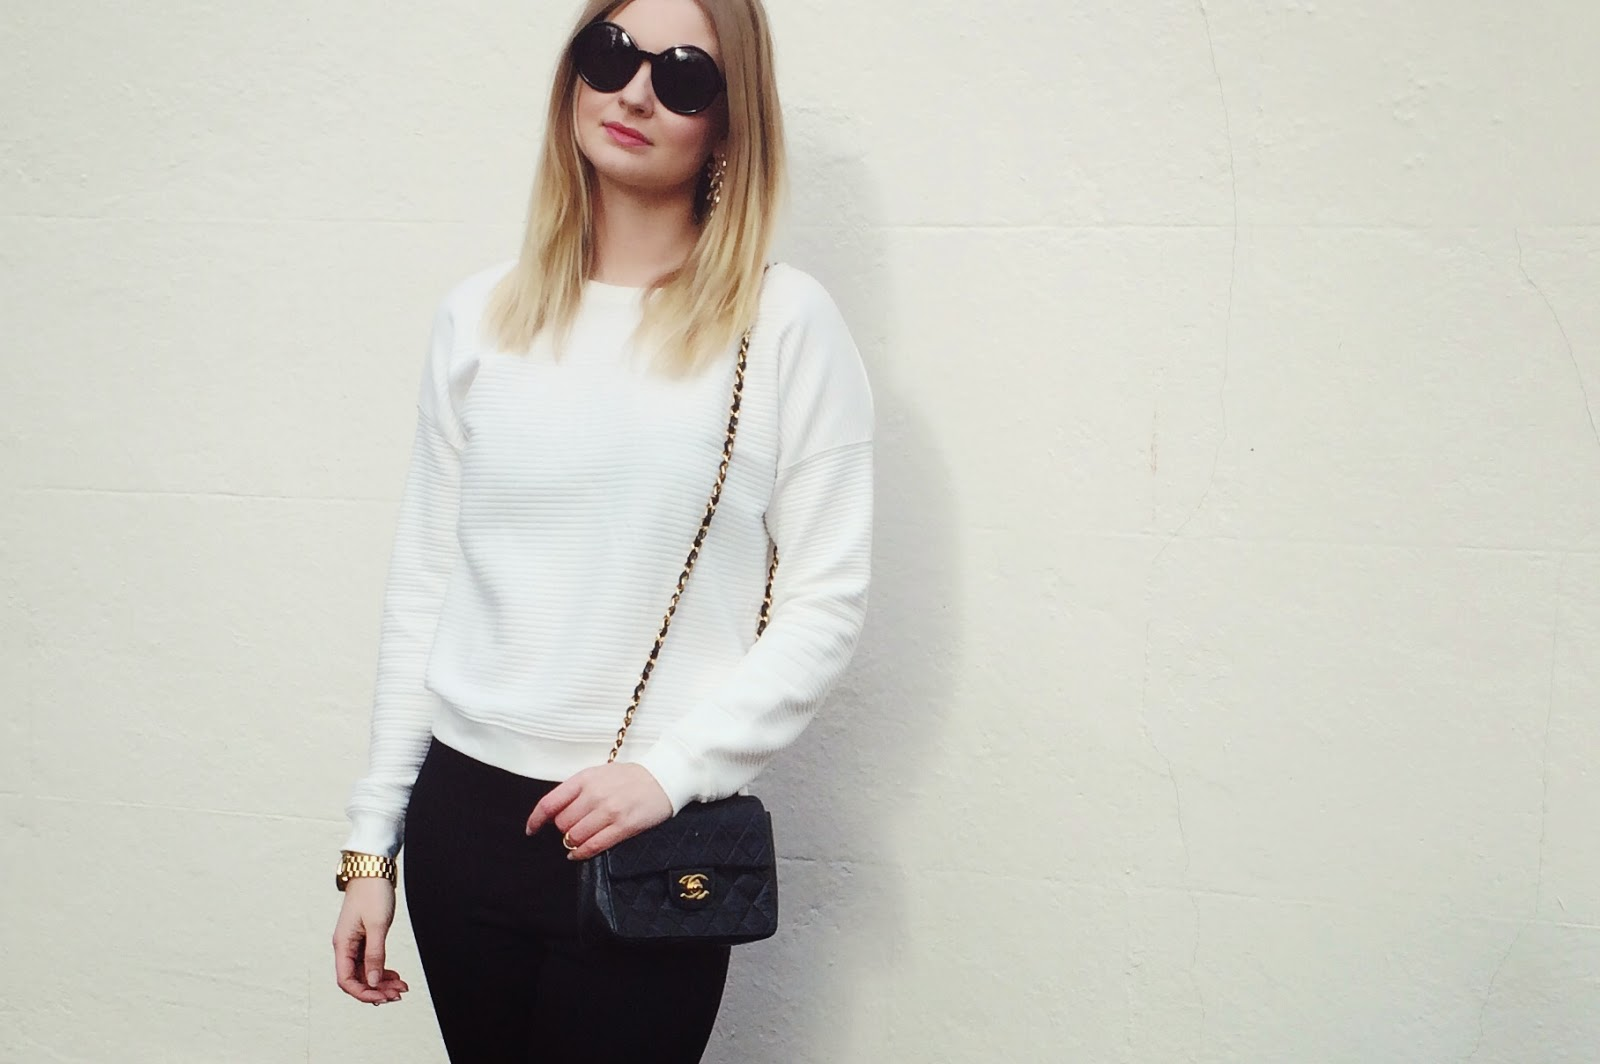 FashionFake, a UK fashion and lifestyle blog. Spring/Summer 2015 white and monochrome trend, street style.